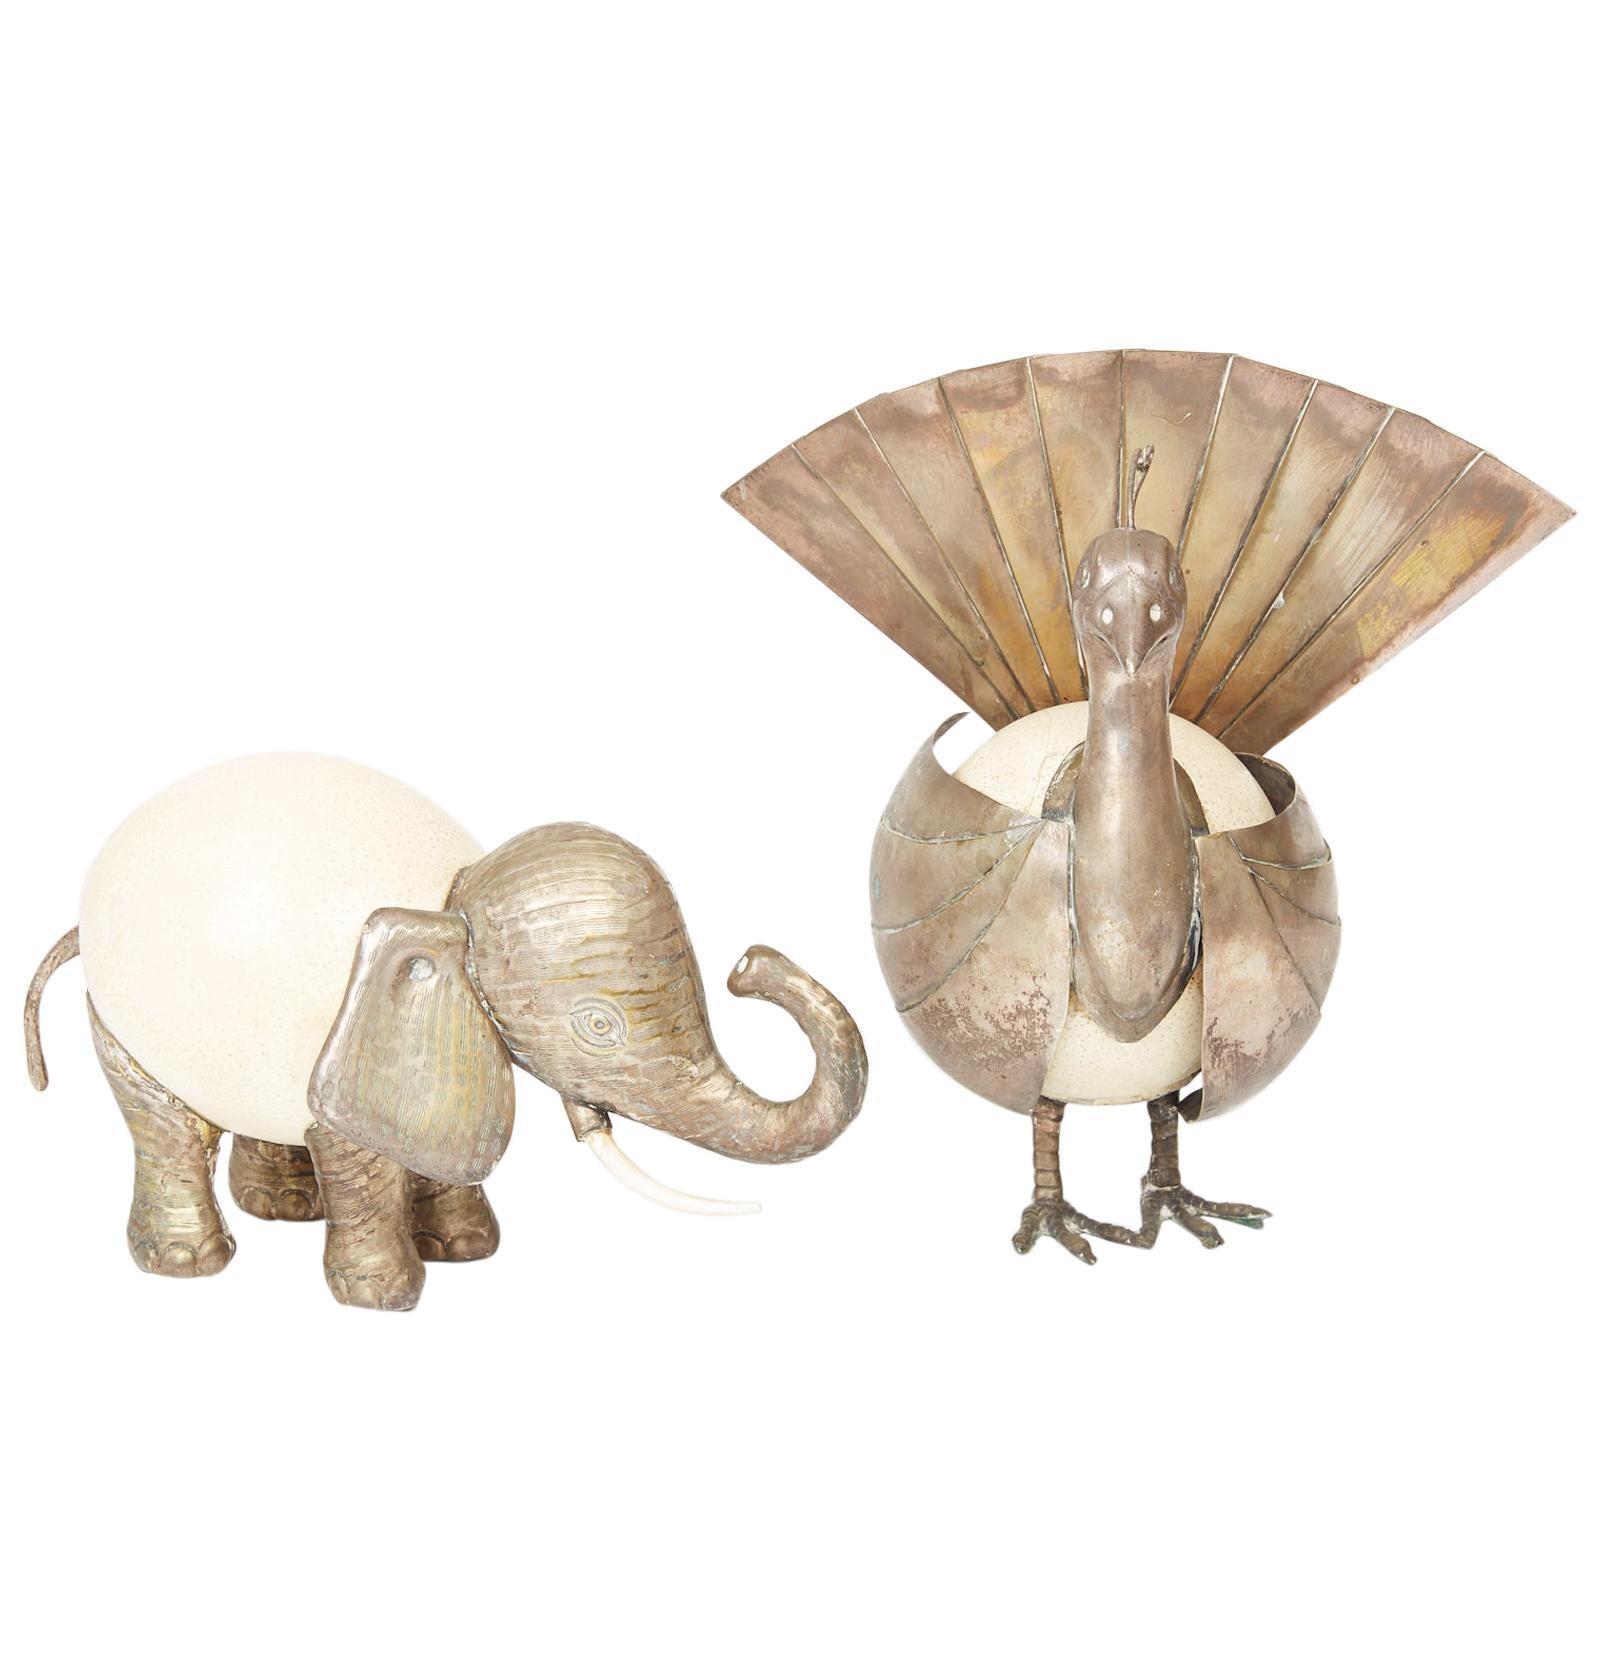 Anthony Redmile Ostrich Egg and Silver Elephant and Peacock Sculptures